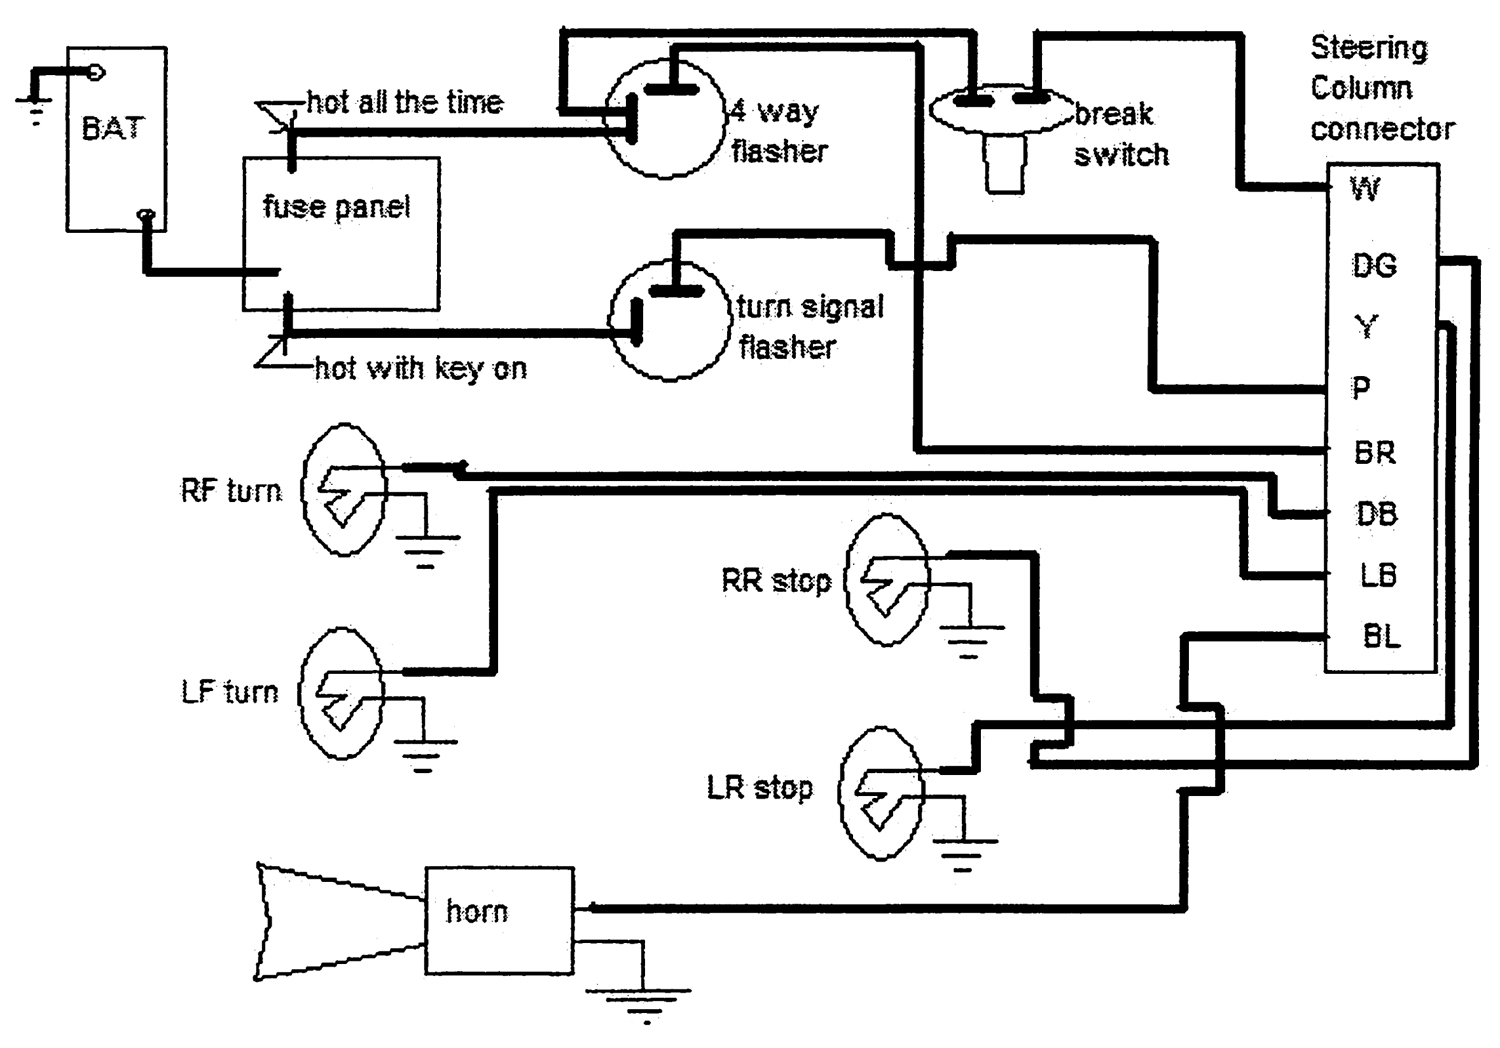 Gm Steering Column Wiring Schematic